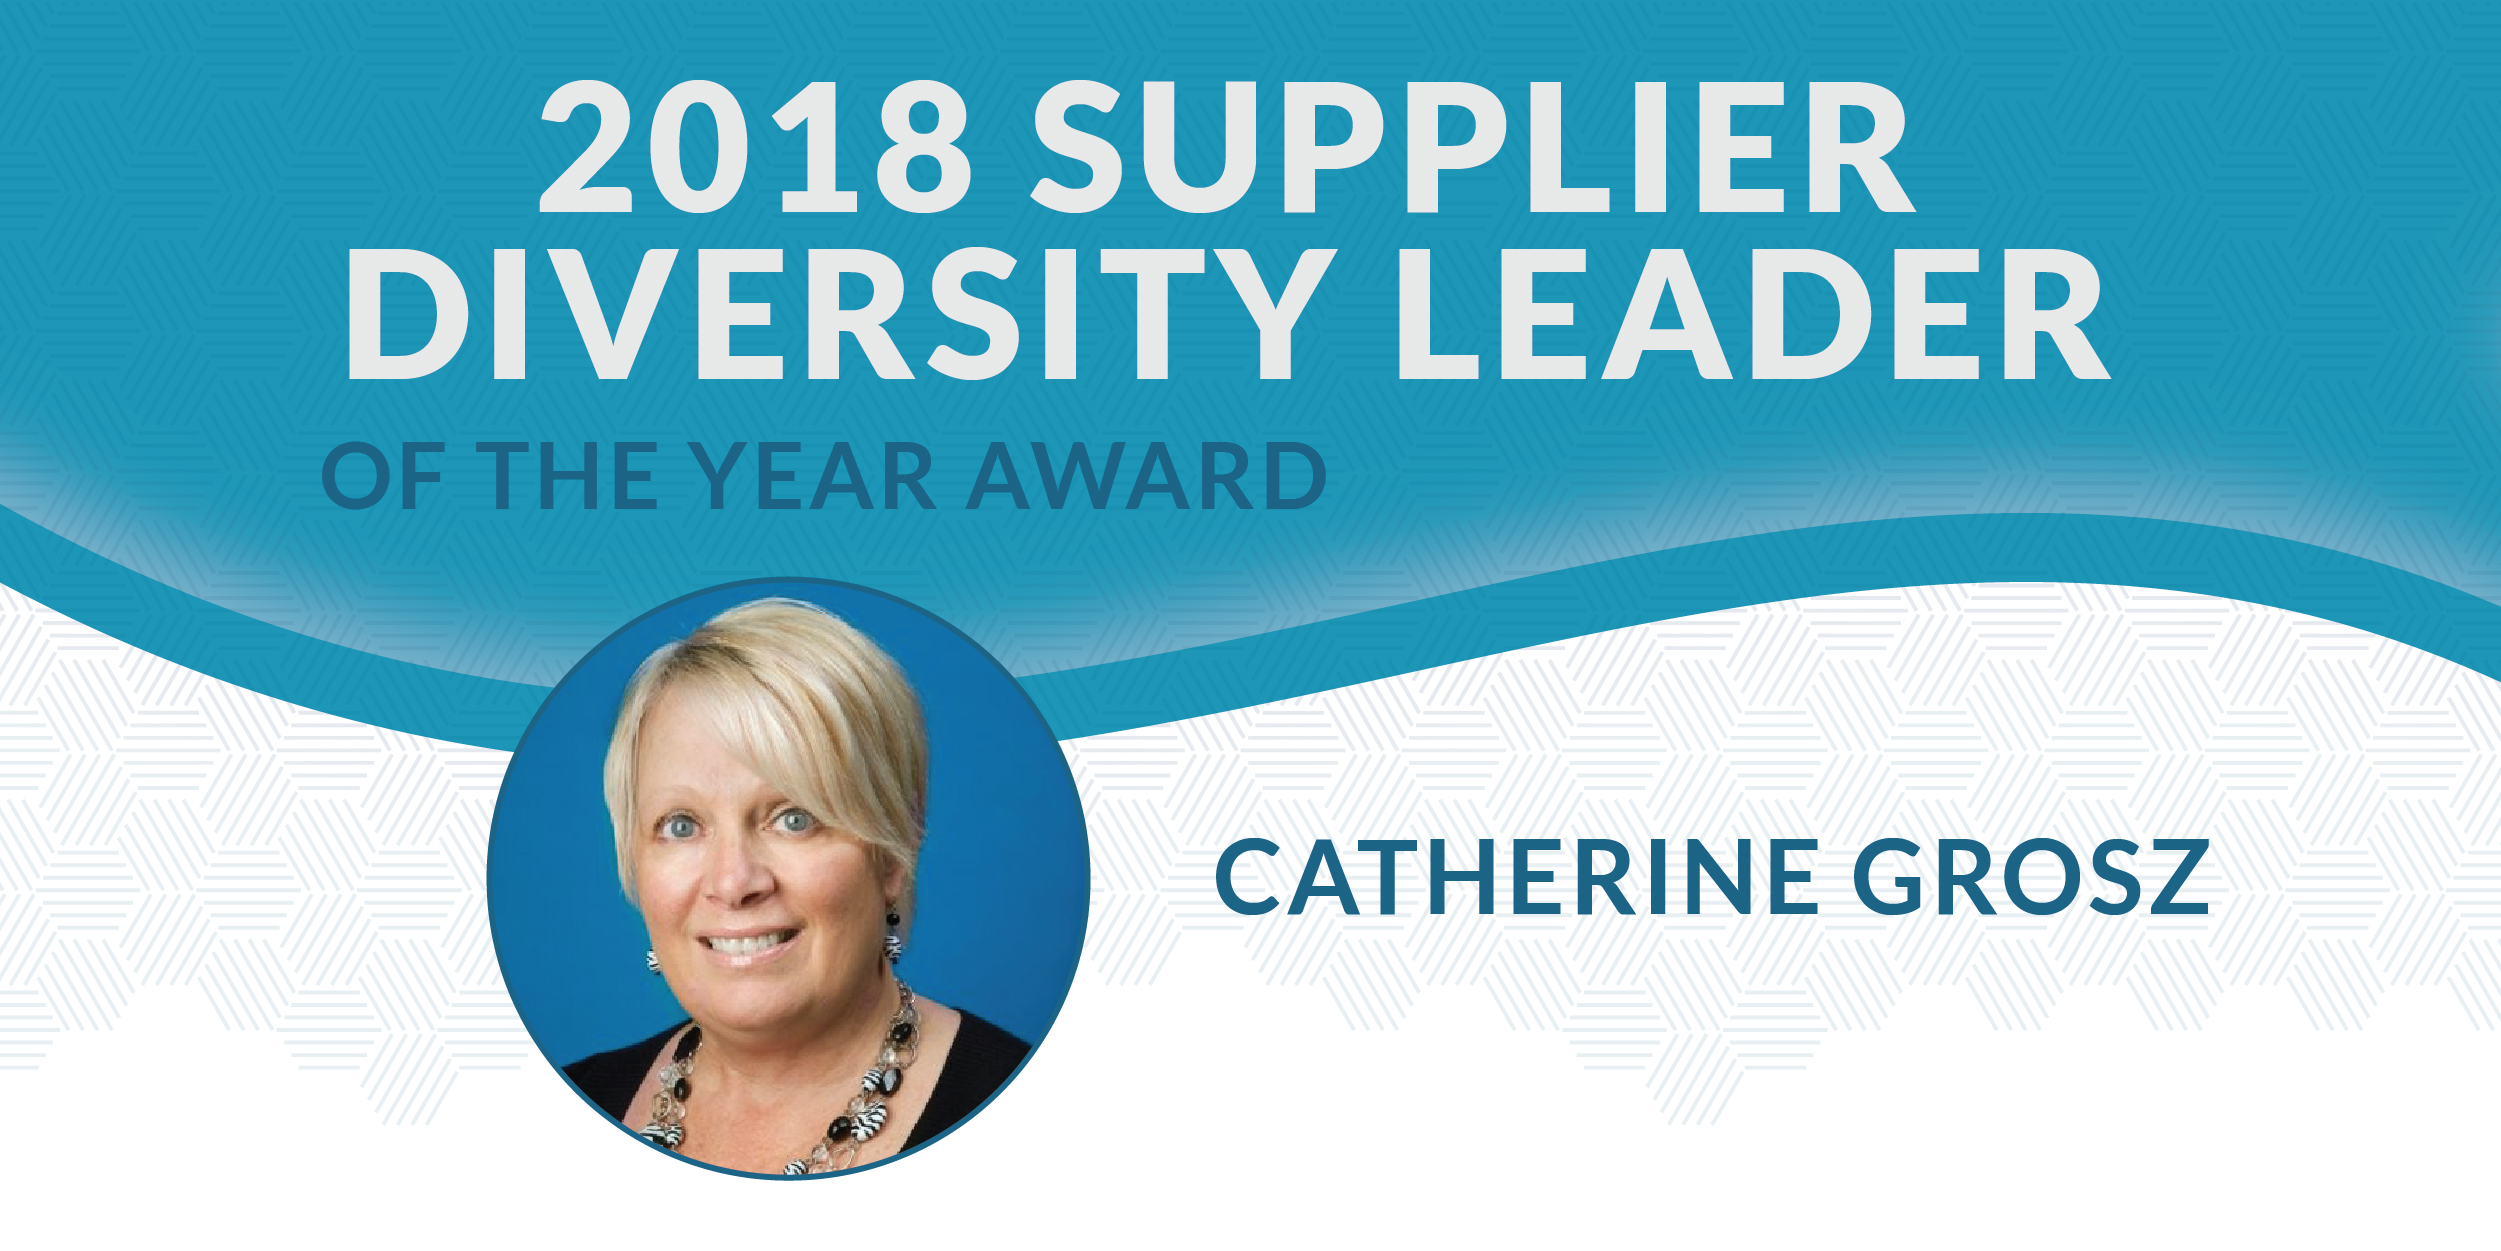 2018 Supplier Diversity Leader Catherine Grosz